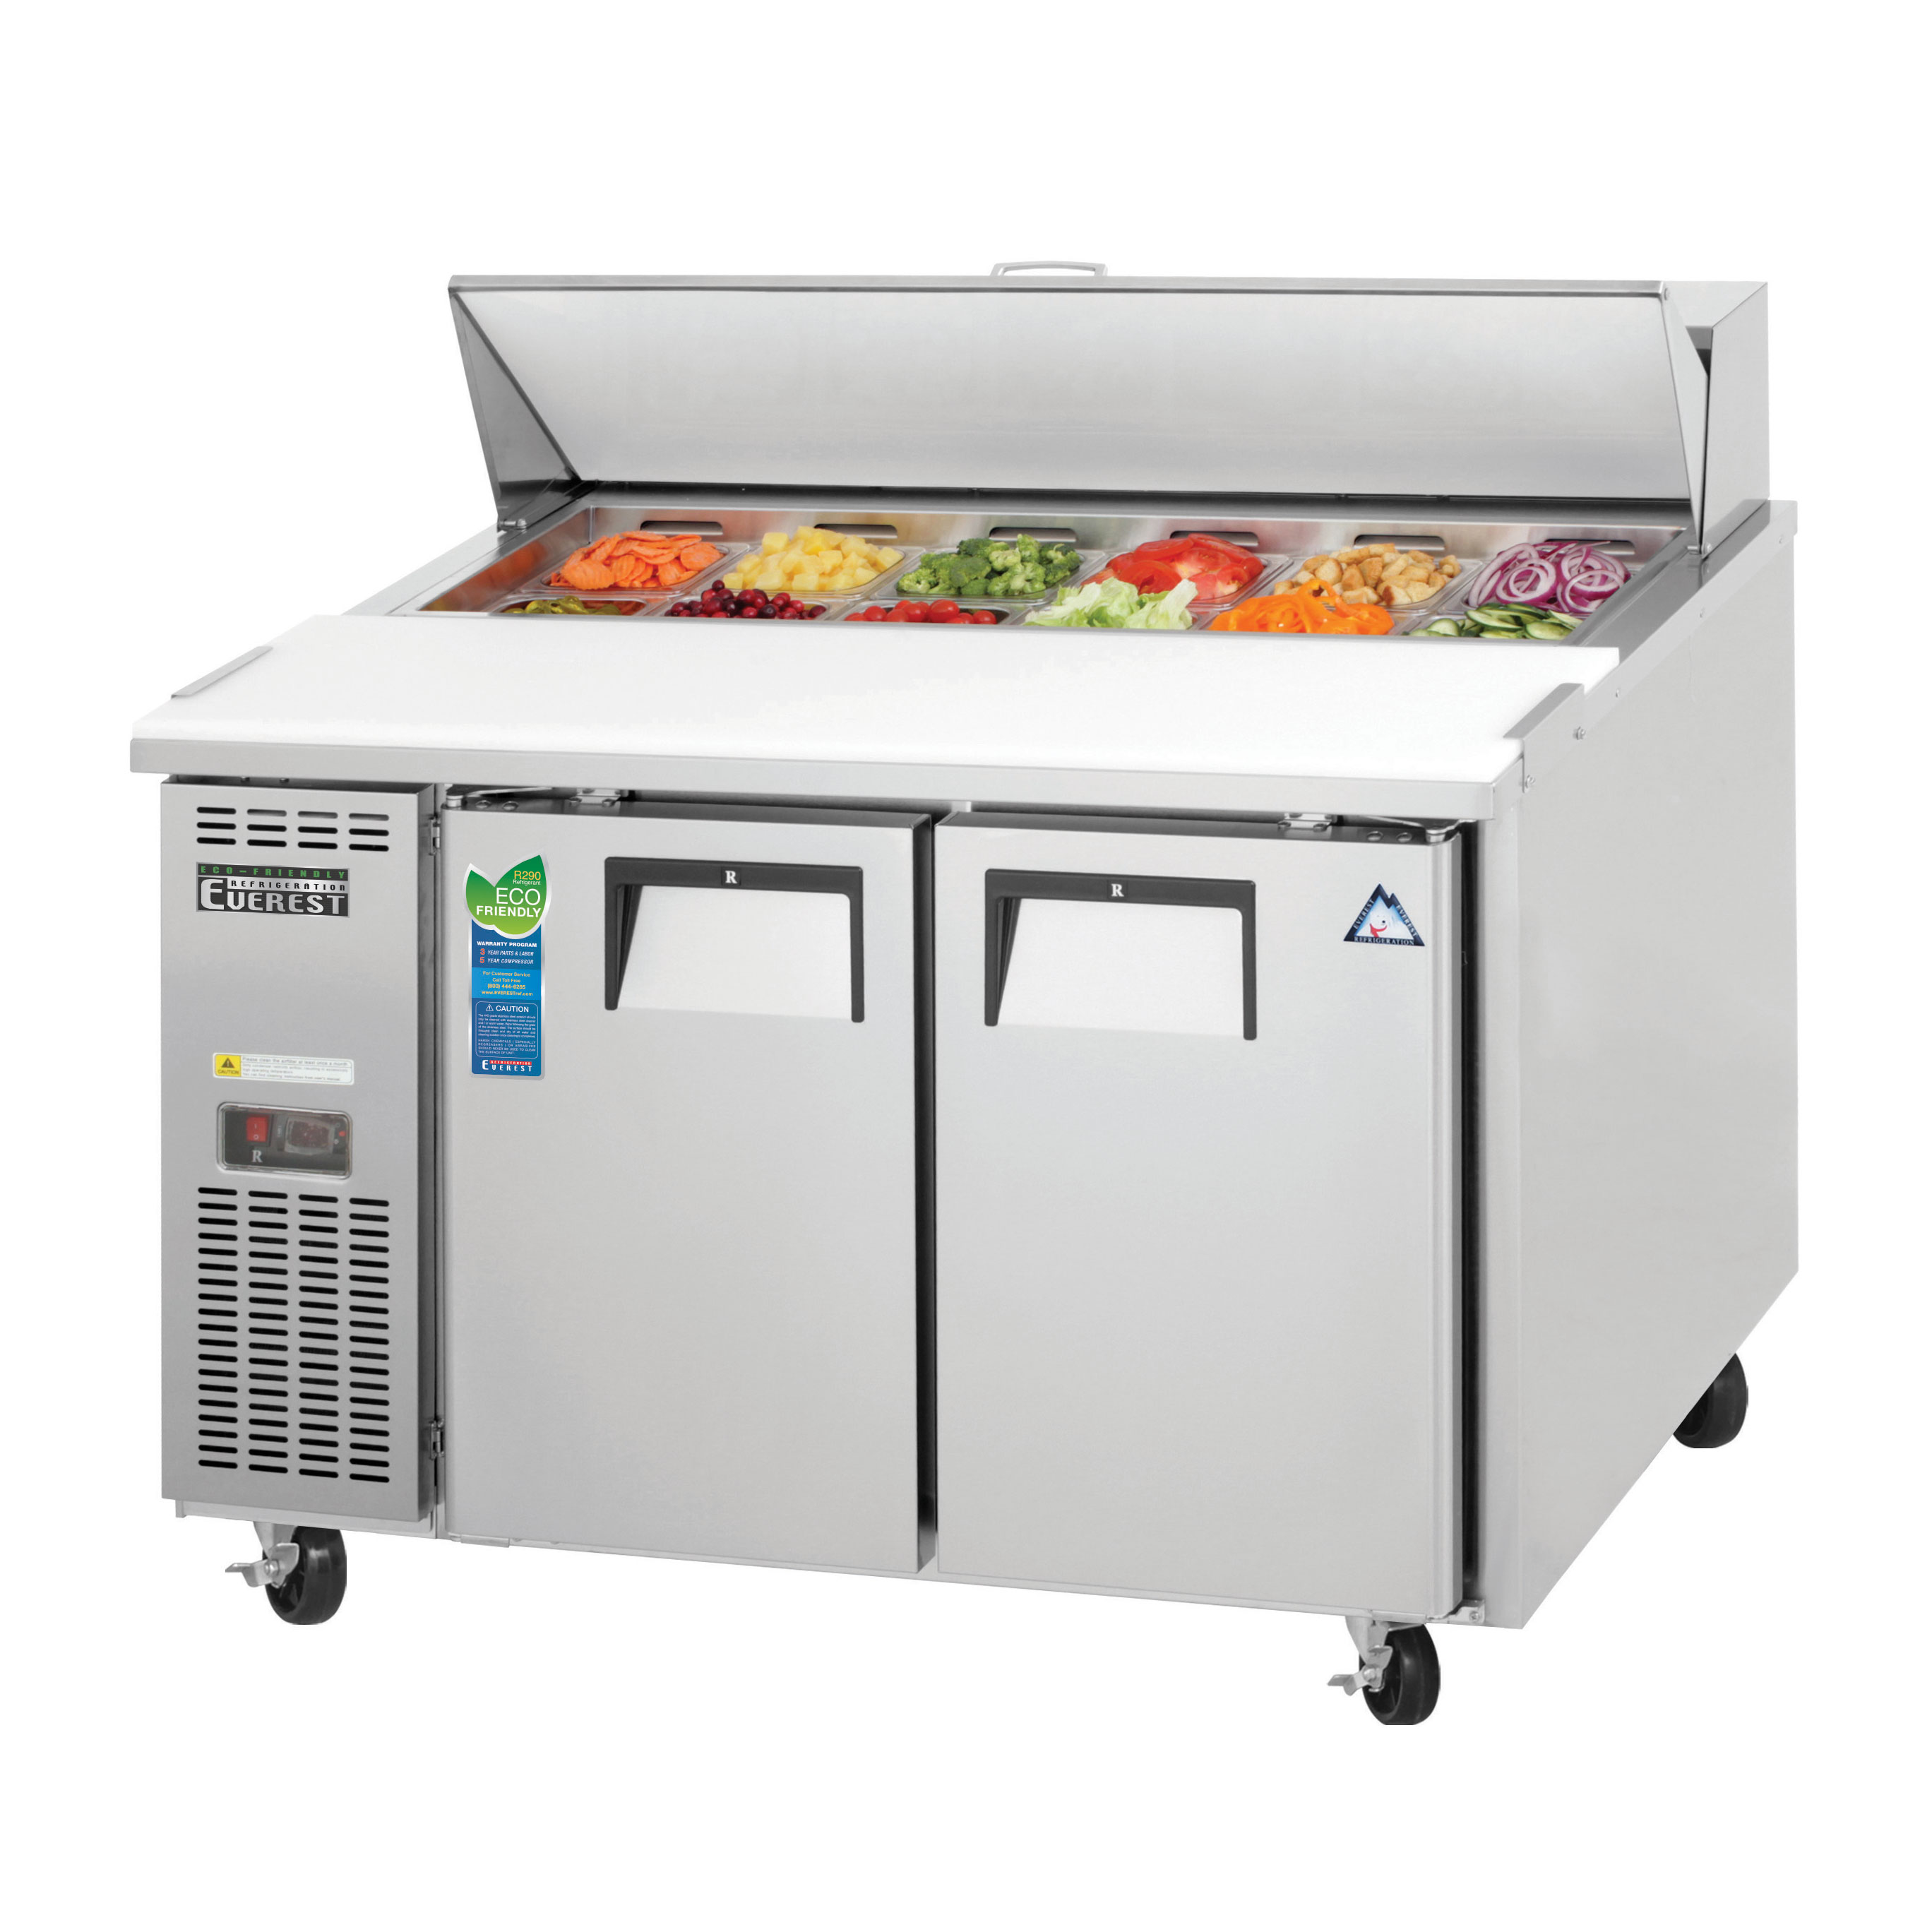 Everest Refrigeration EPR2-24 refrigerated counter, sandwich / salad unit